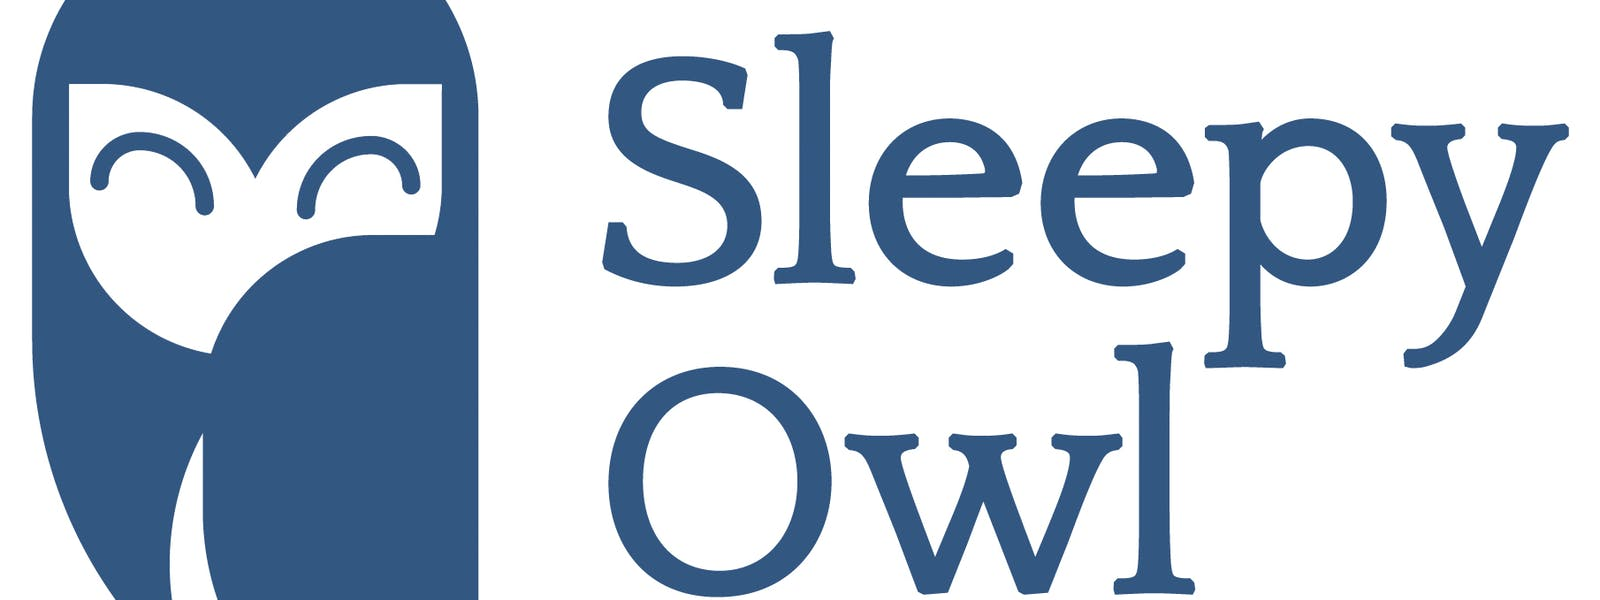 The Sleepy Owl logo